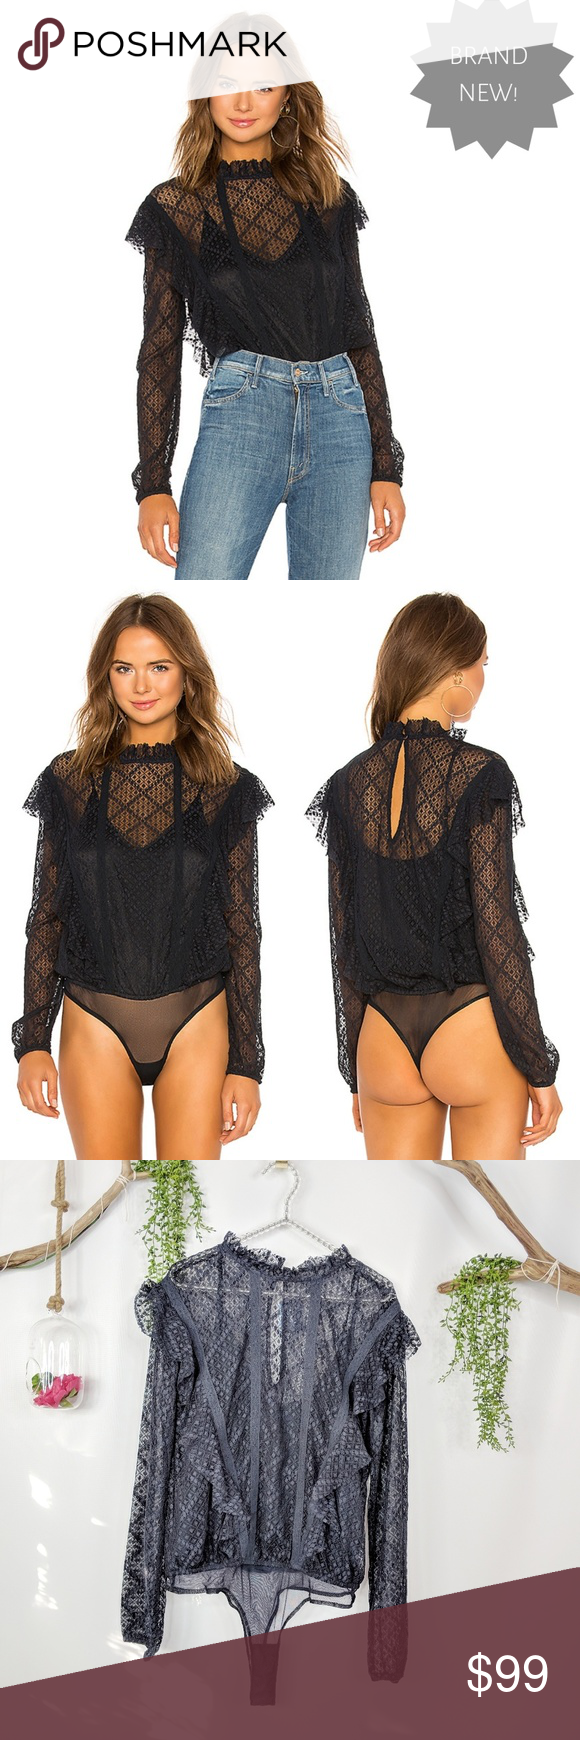 NWT FREE PEOPLE Goldie bodysuit black lace Nylon blend Hand wash cold  Adjustable cami lining Sheer lace fabric Ruffle trim Elasticized arm  openings Bottom ... 414329629e3